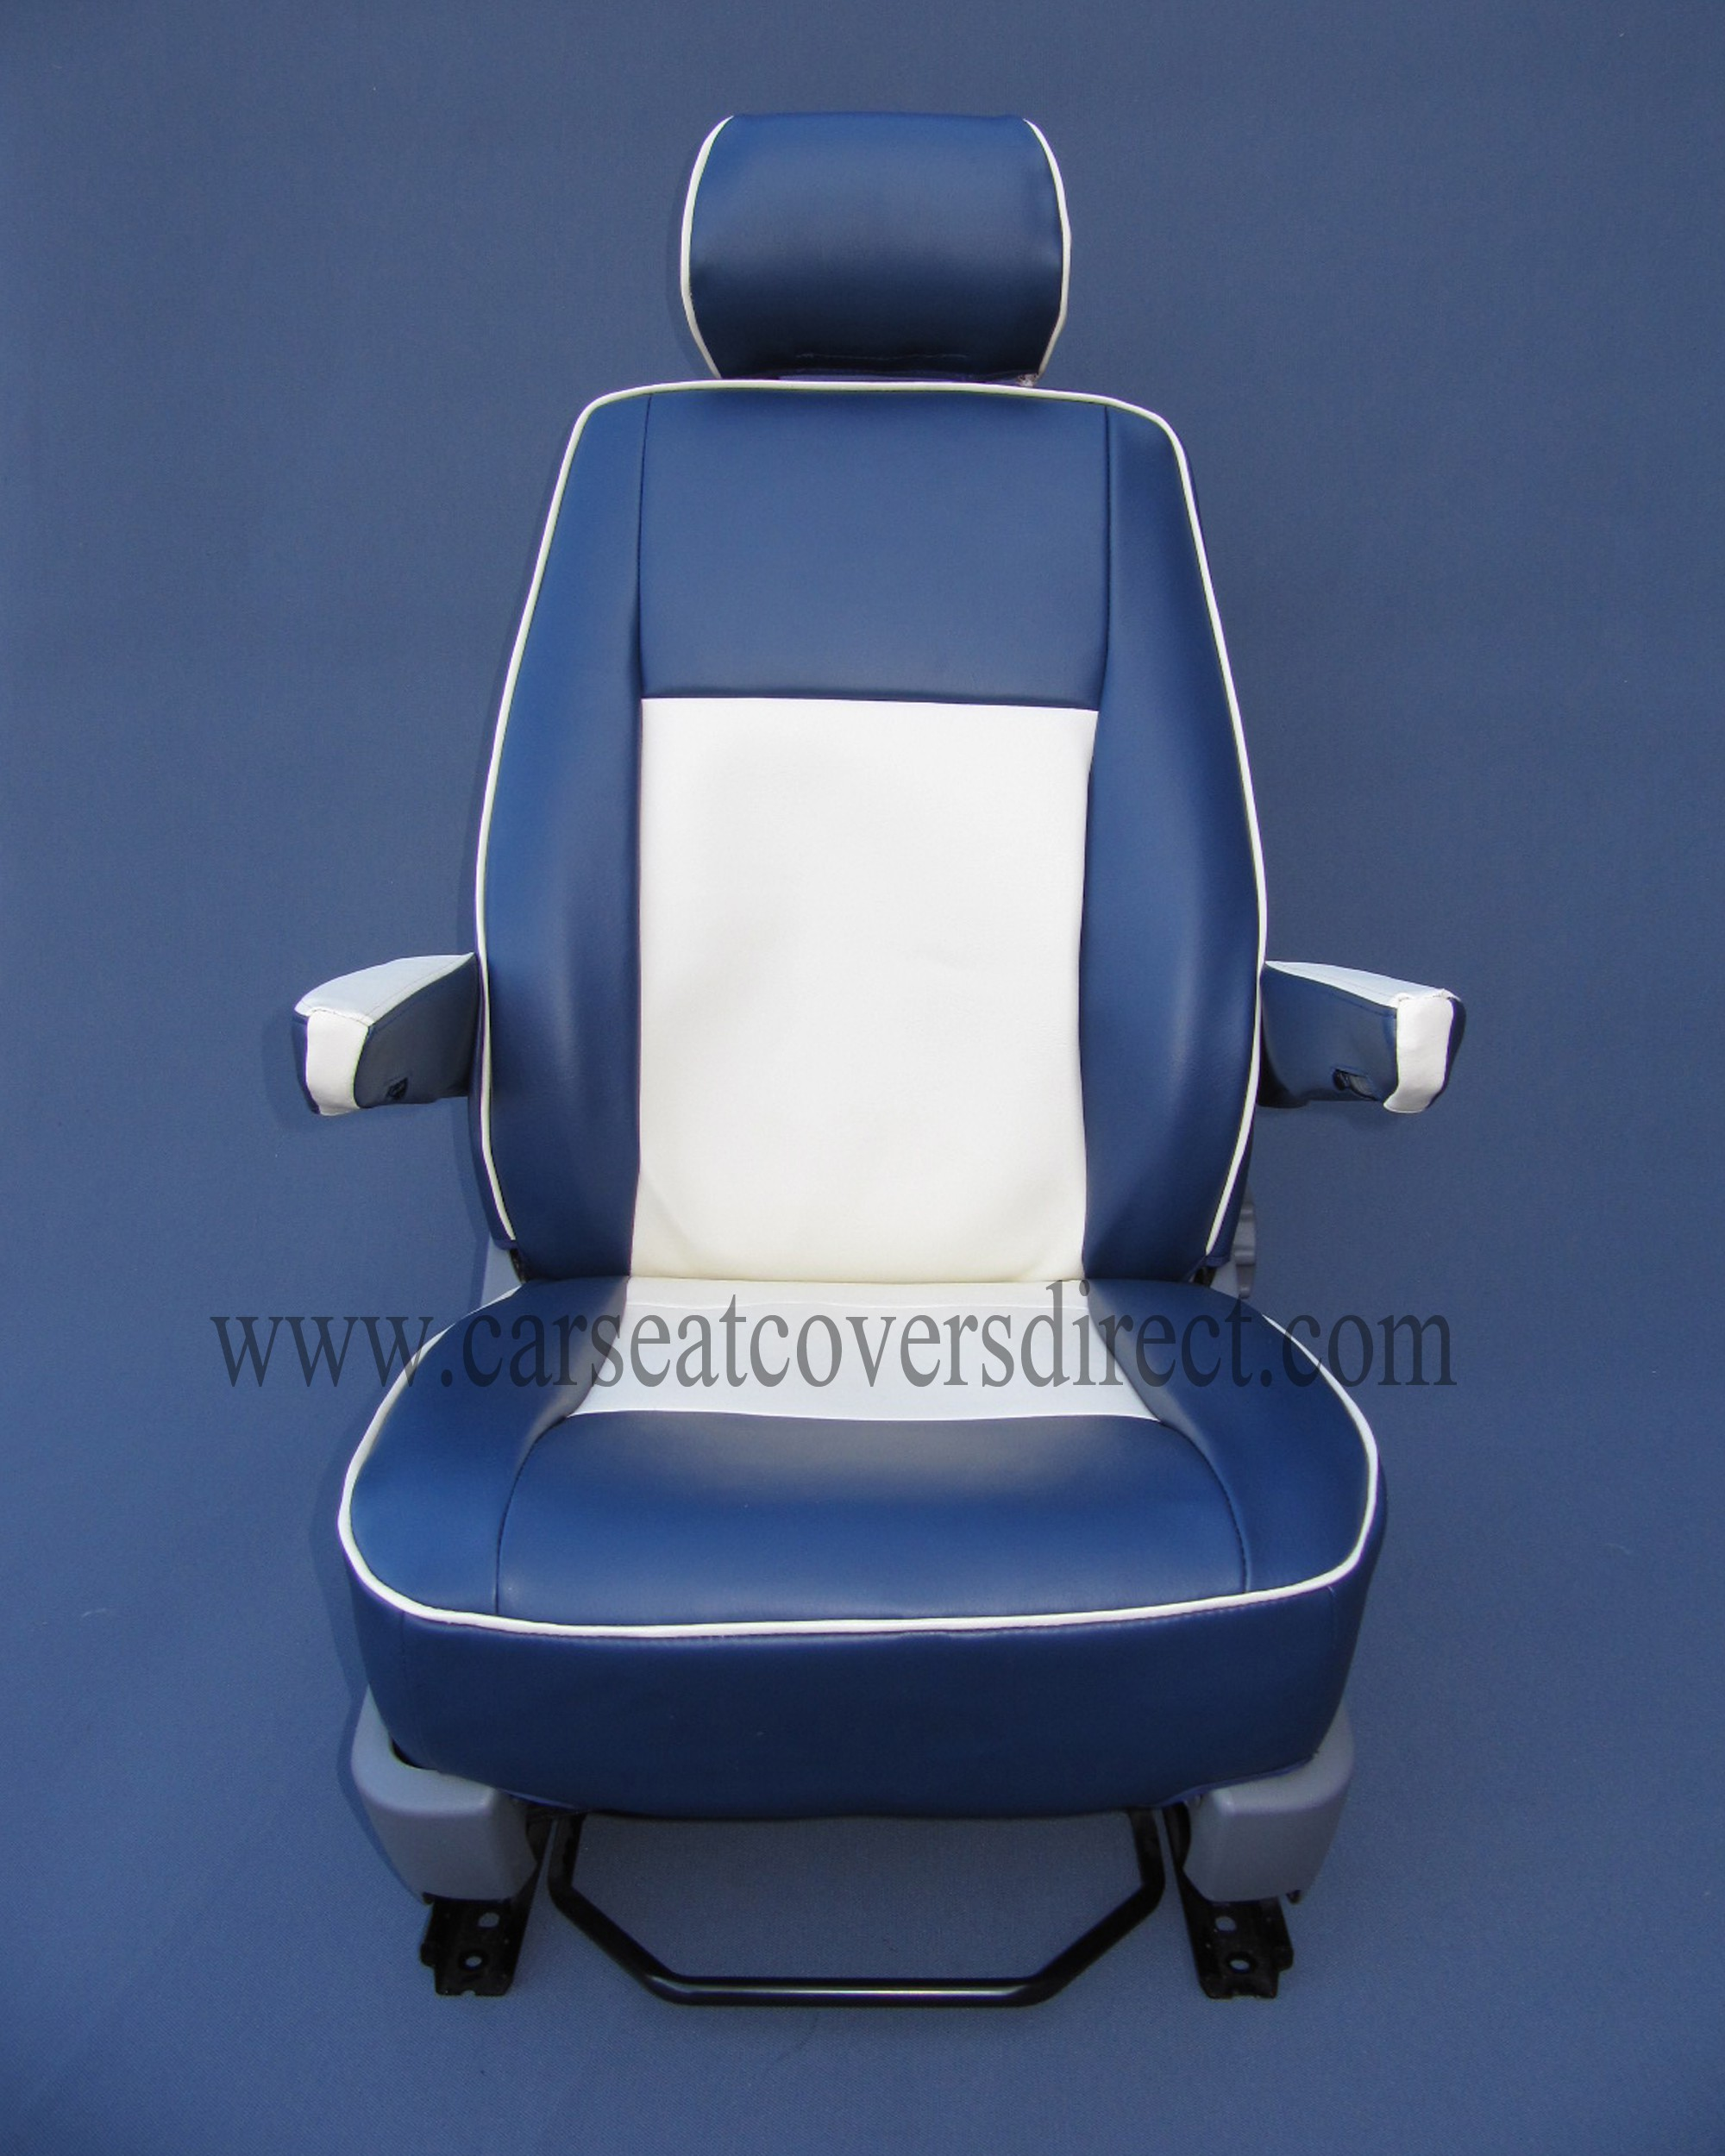 VW T6 Seat Covers Blue & White Car Seat Covers Direct Tailored